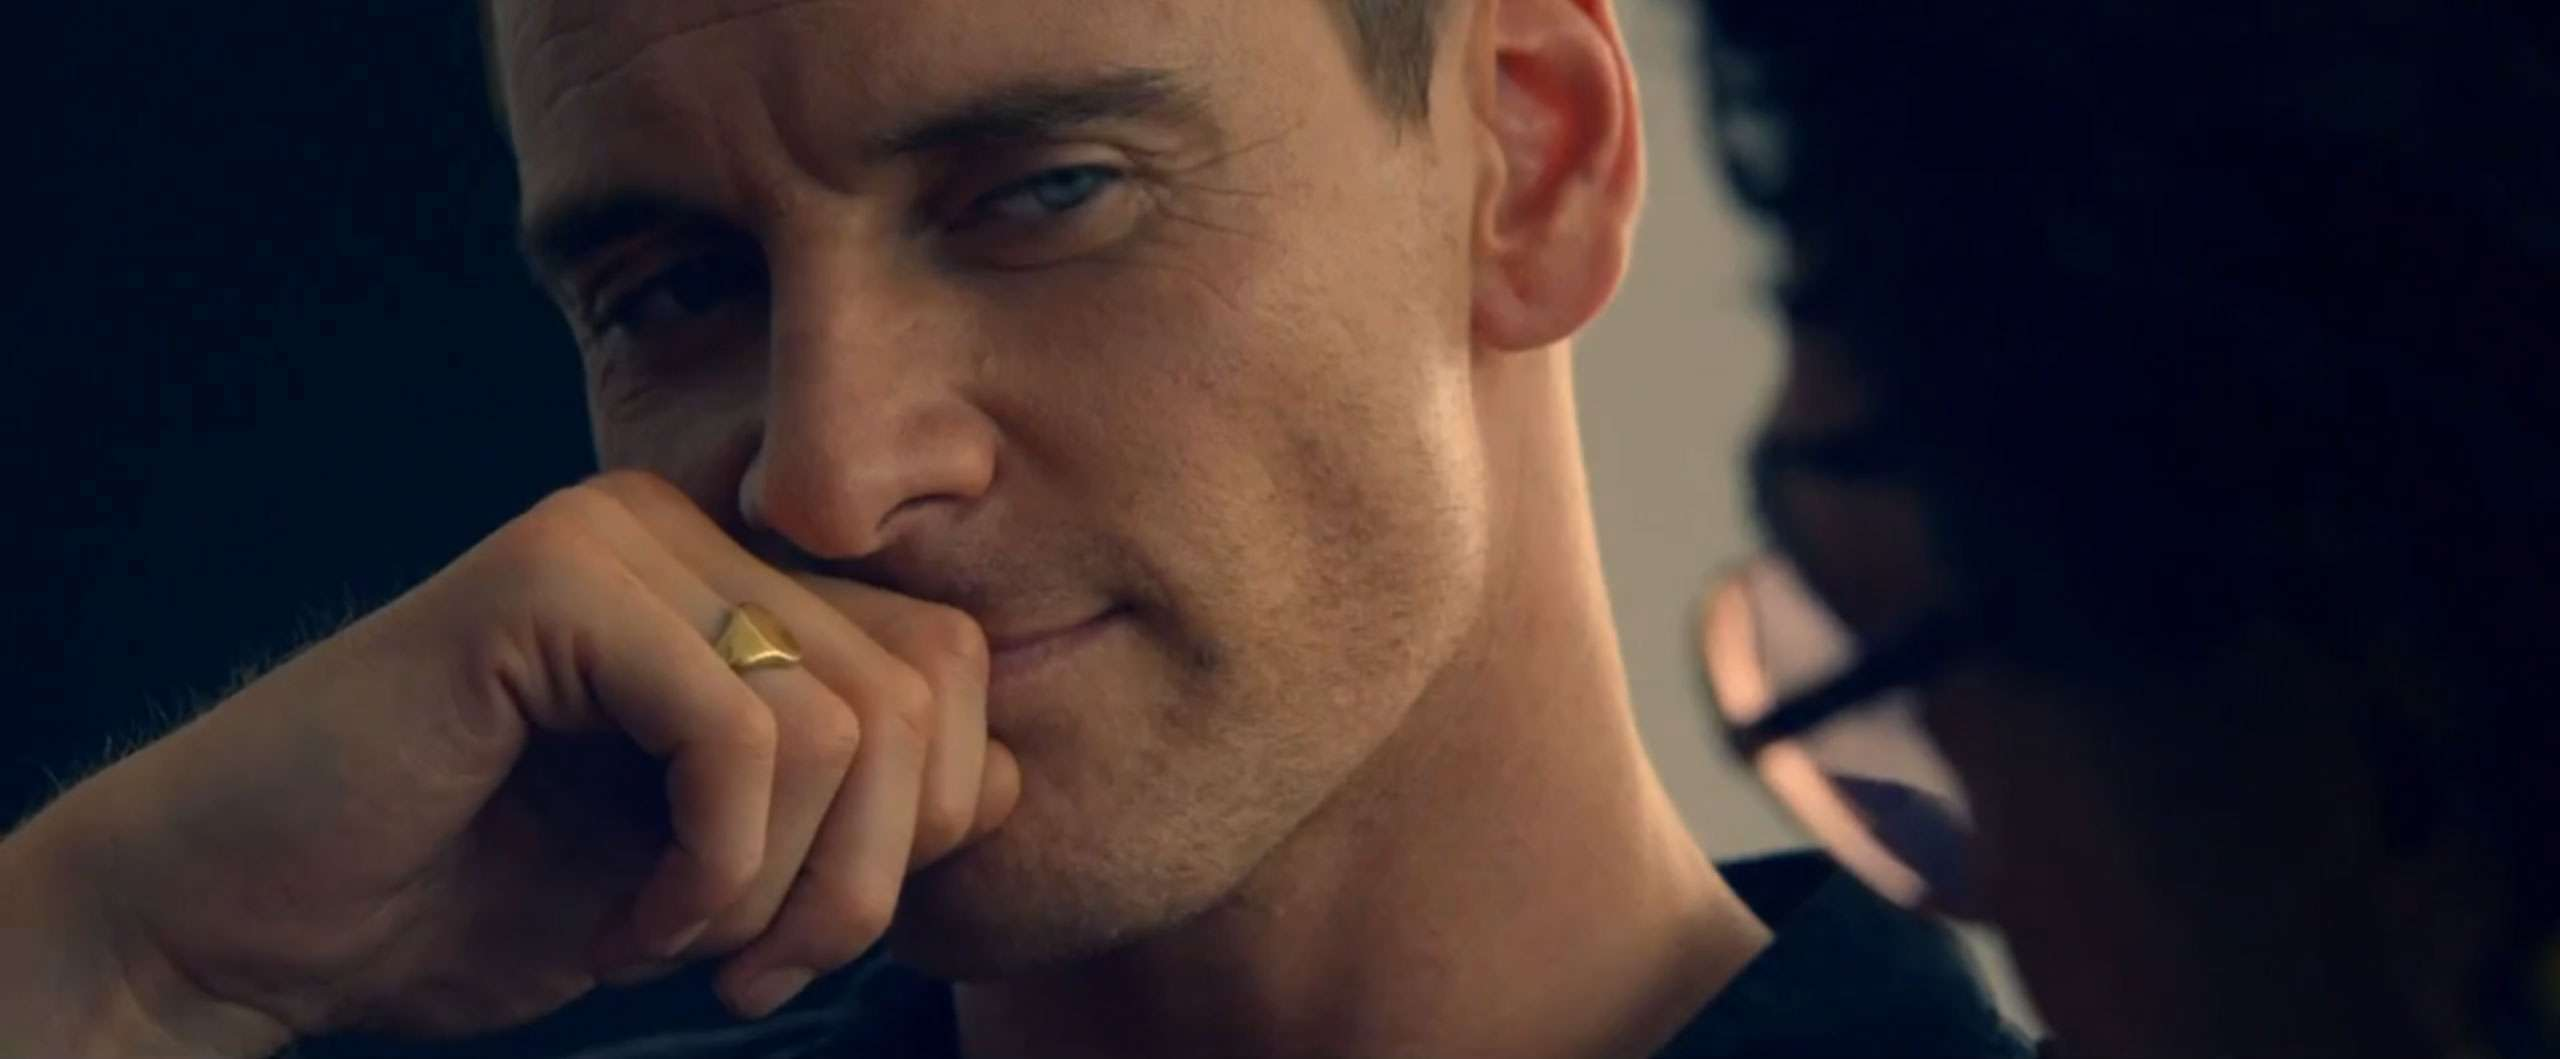 The Counselor Fassbender